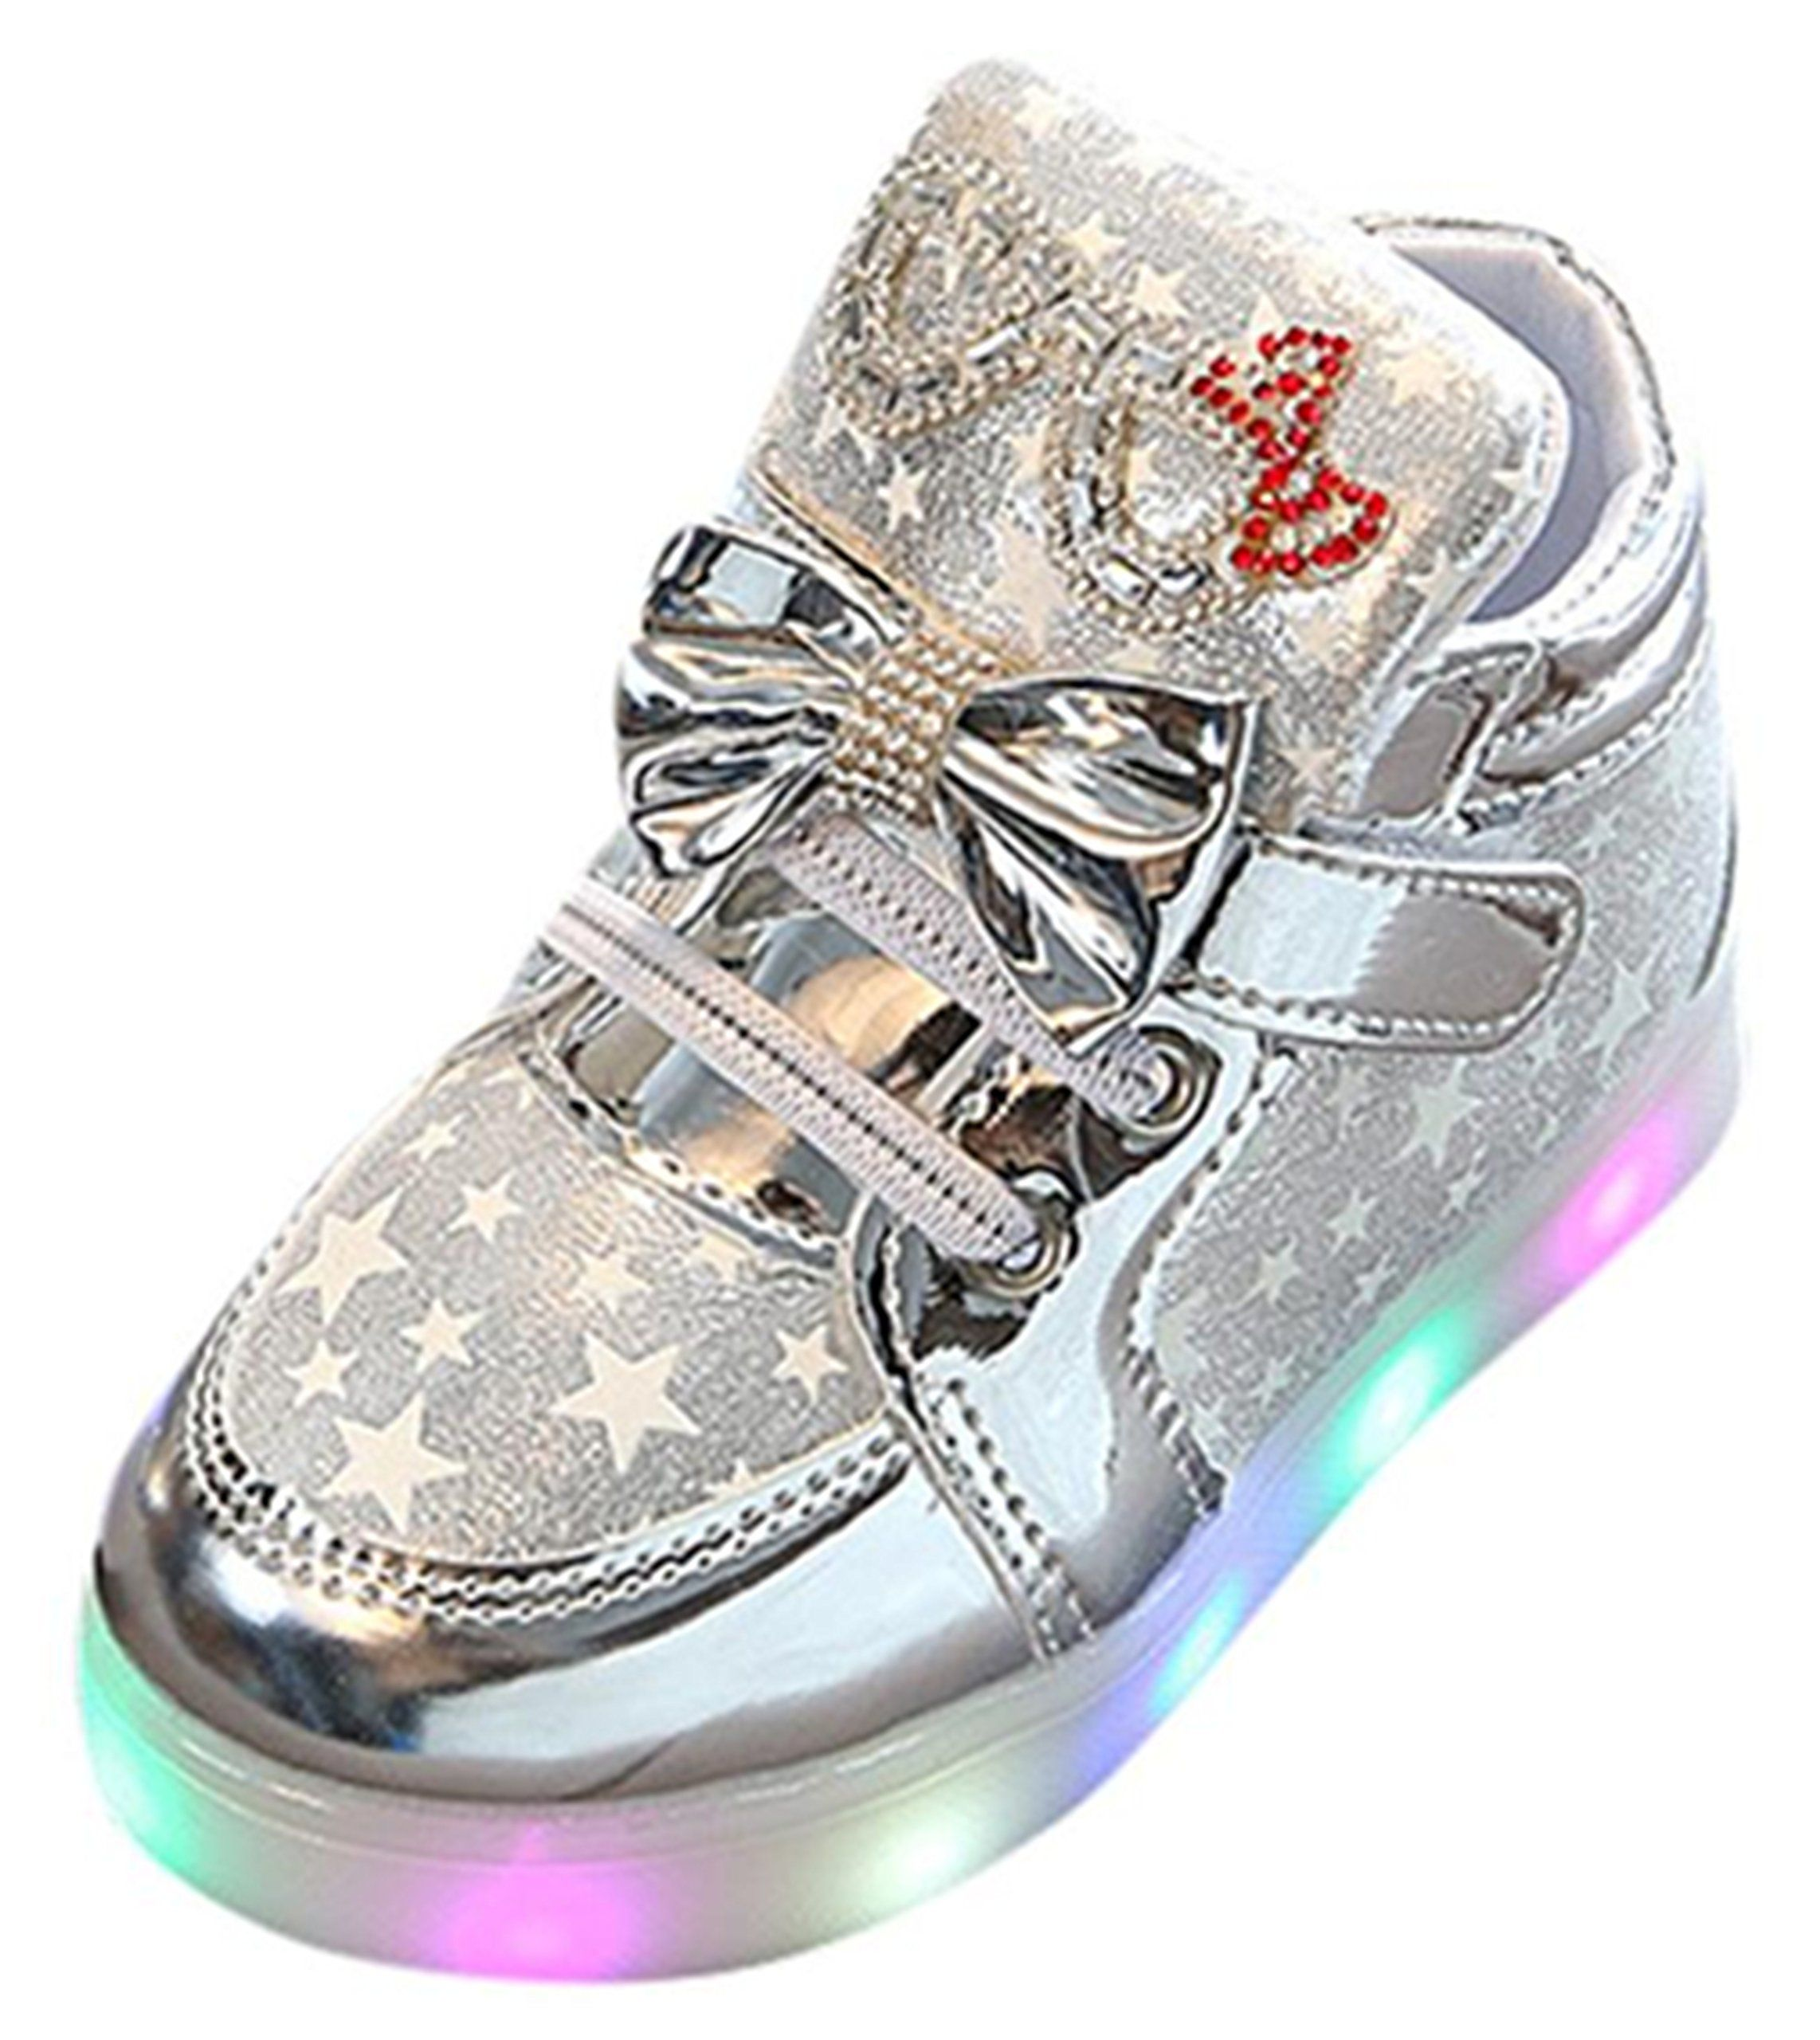 dab3e2b8027 Iuhan LED Luminous Baby Fashion Sneakers Child Toddler Casual Colorful  Light Shoes (1.5 year old